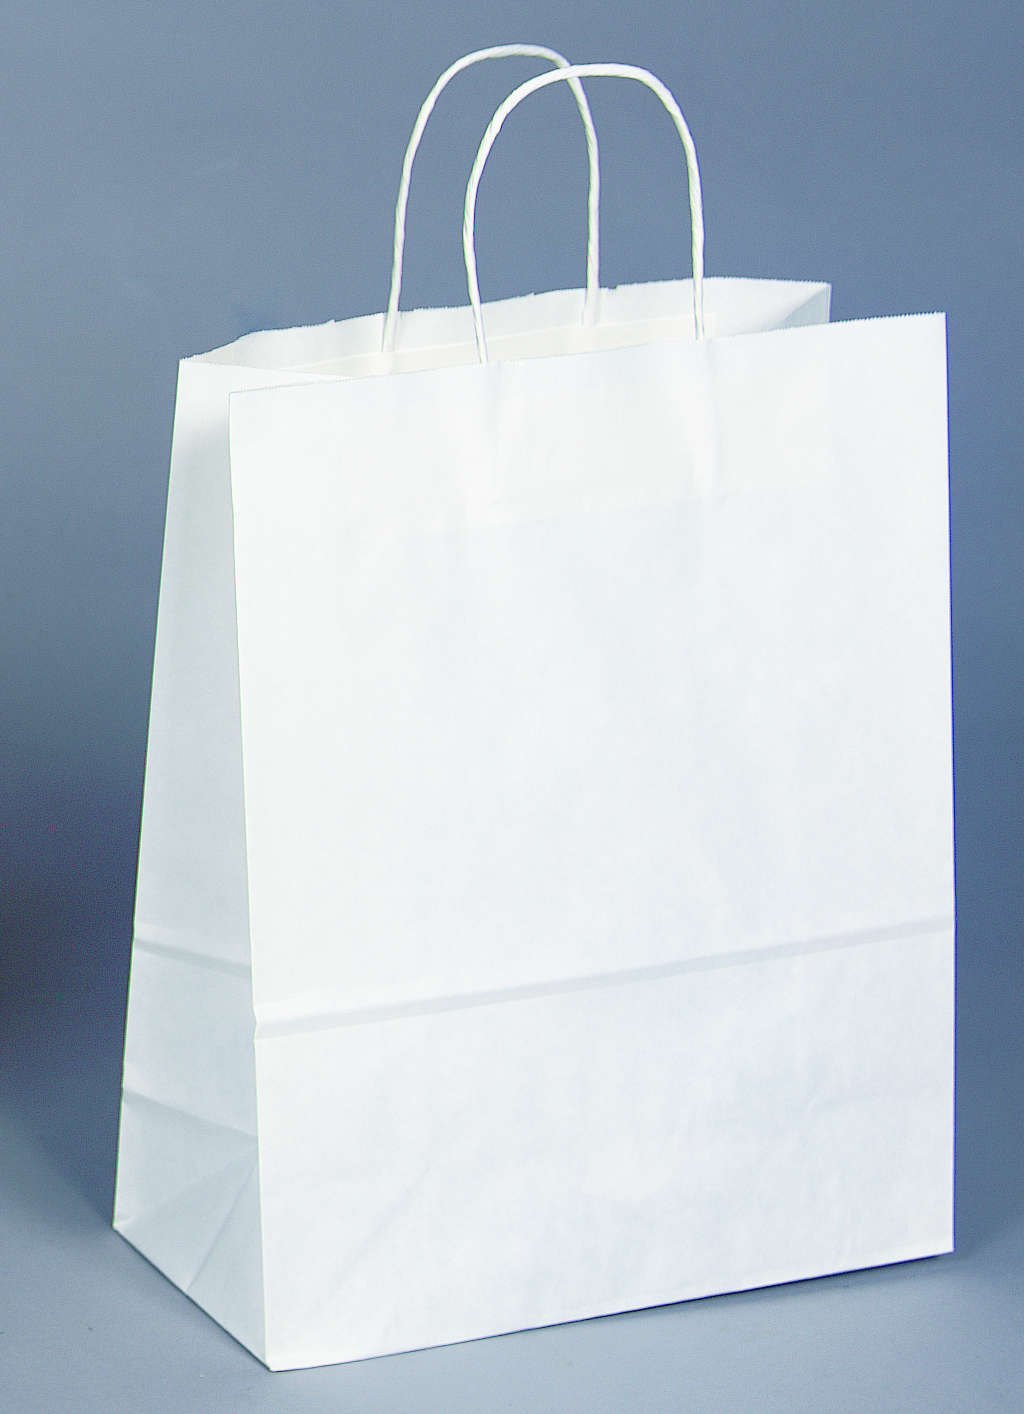 custom paper bags for retail S walter packaging is a custom bag specialists creating custom printed bags is a breeze whether you need tradeshow bags, shopping bags, retail bags, paper bags.